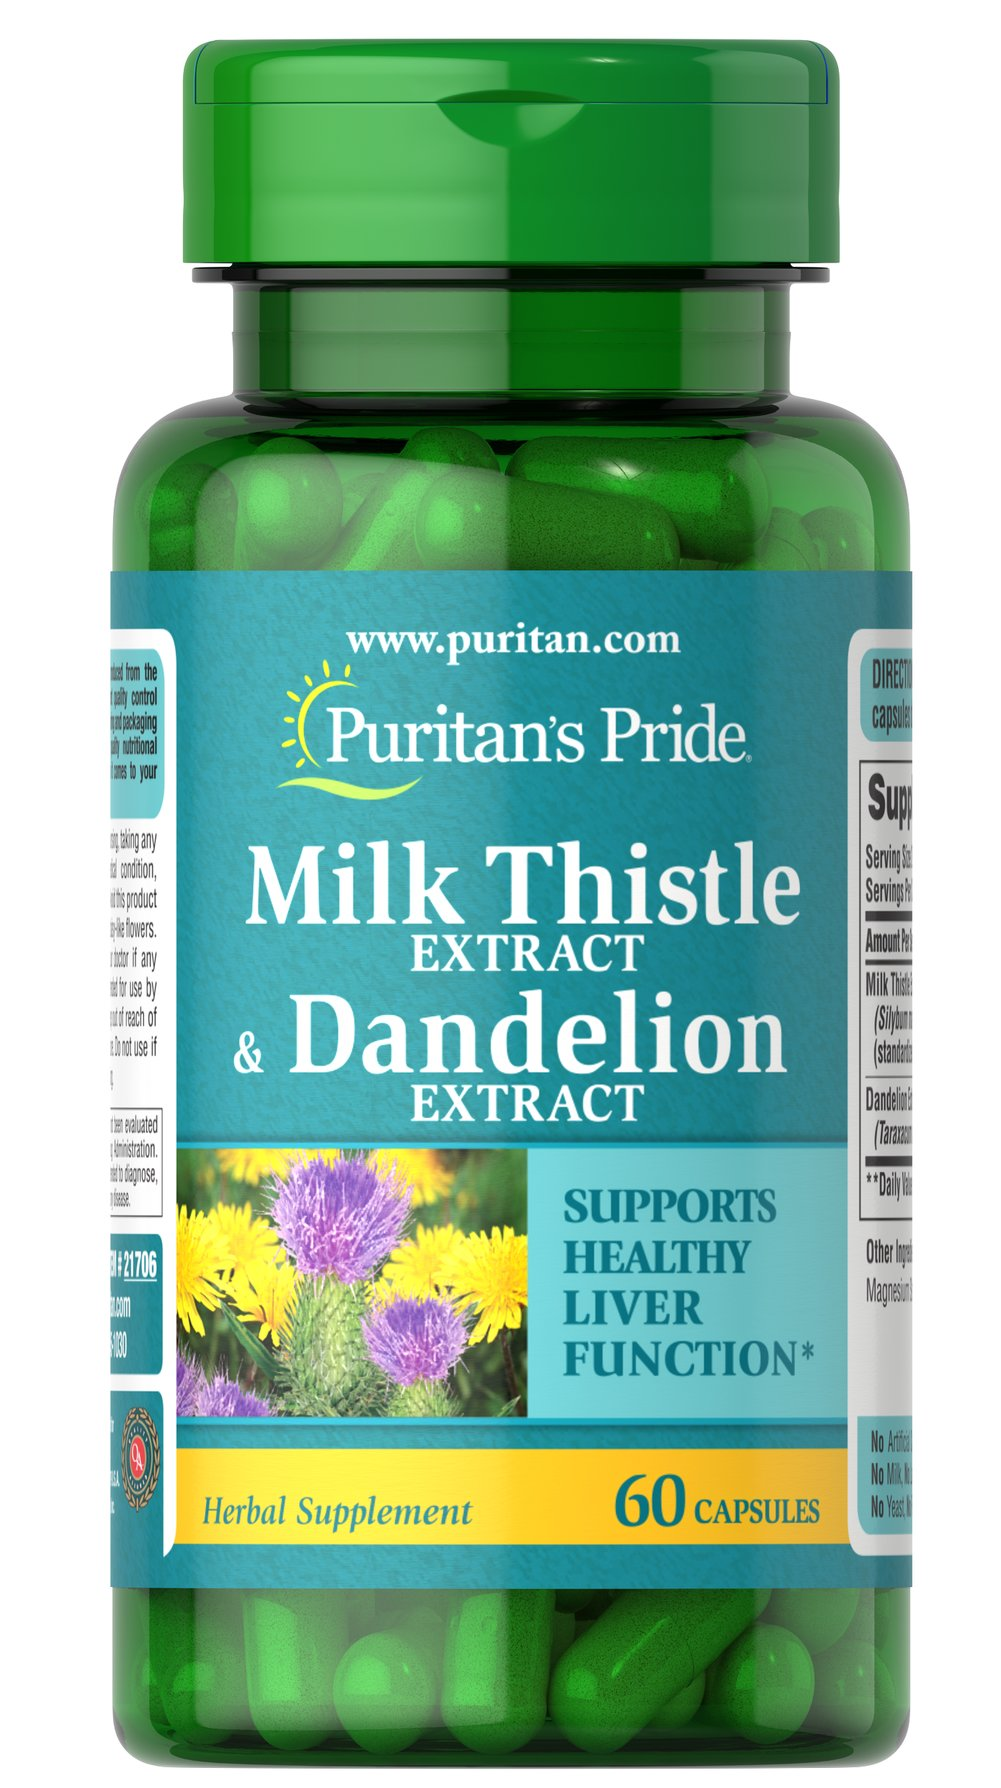 Milk Thistle & Dandelion Extract Thumbnail Alternate Bottle View